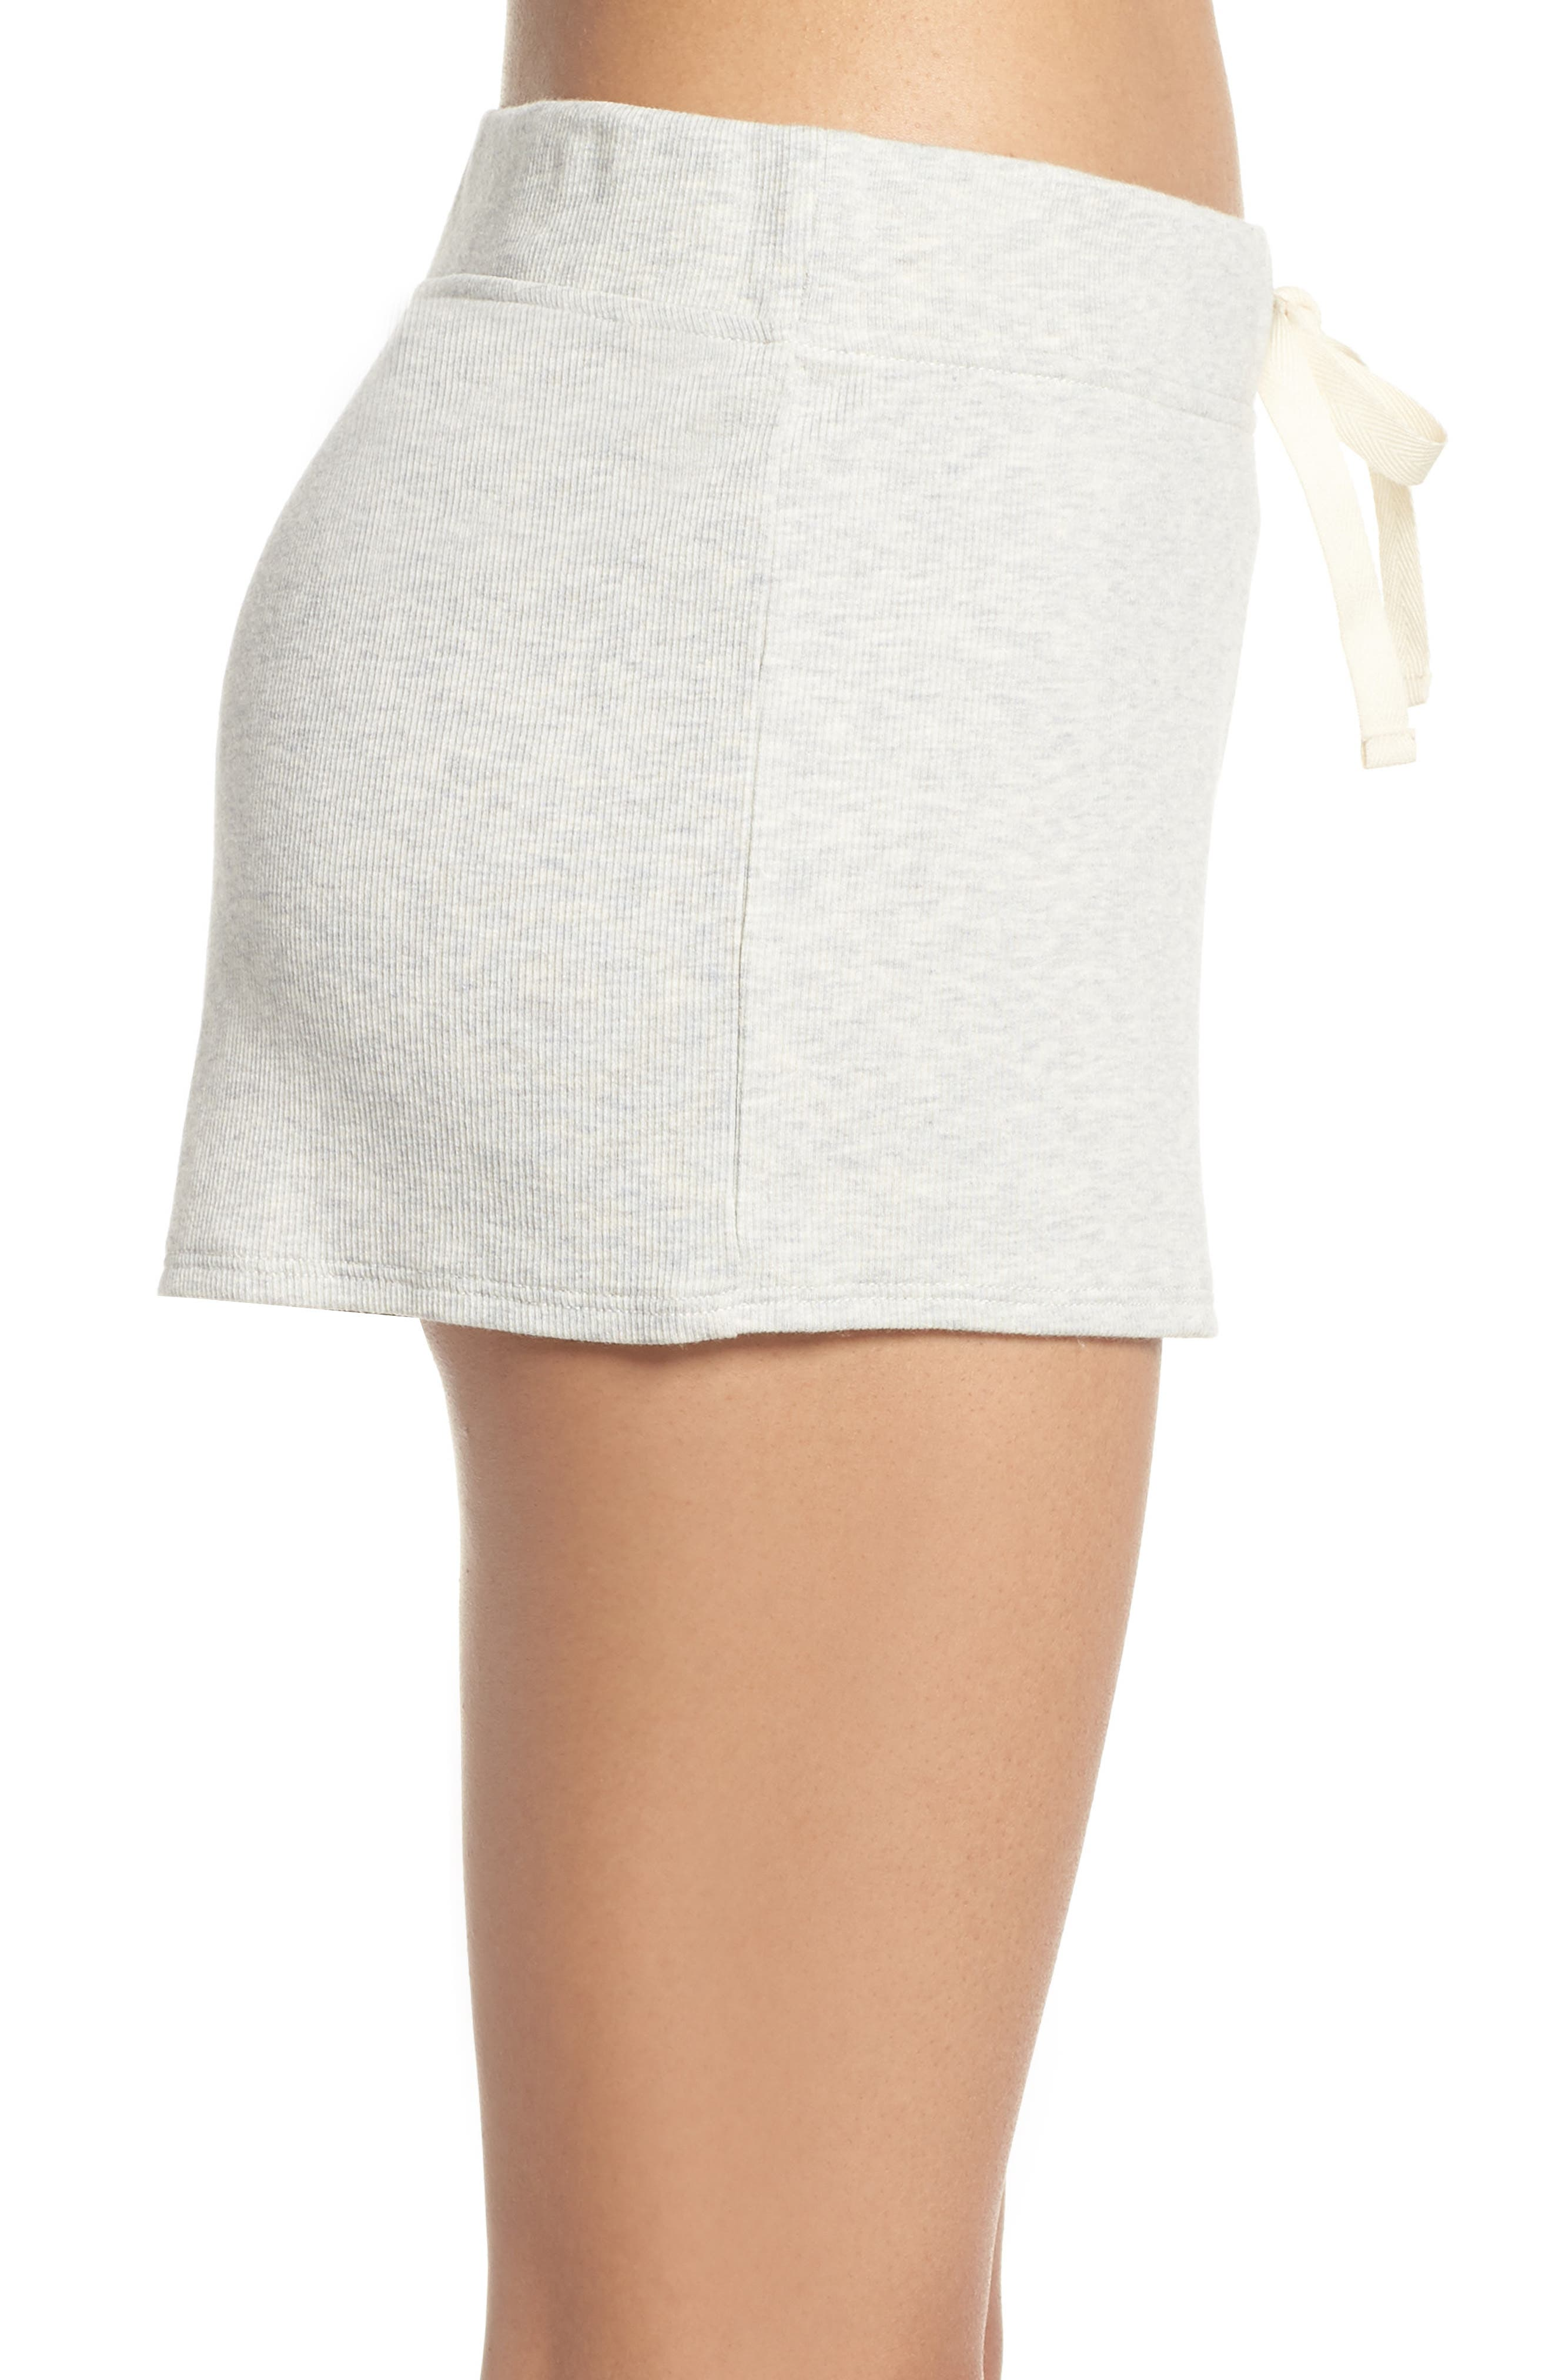 Daydream Lounge Shorts,                             Alternate thumbnail 5, color,                             Grey Heather